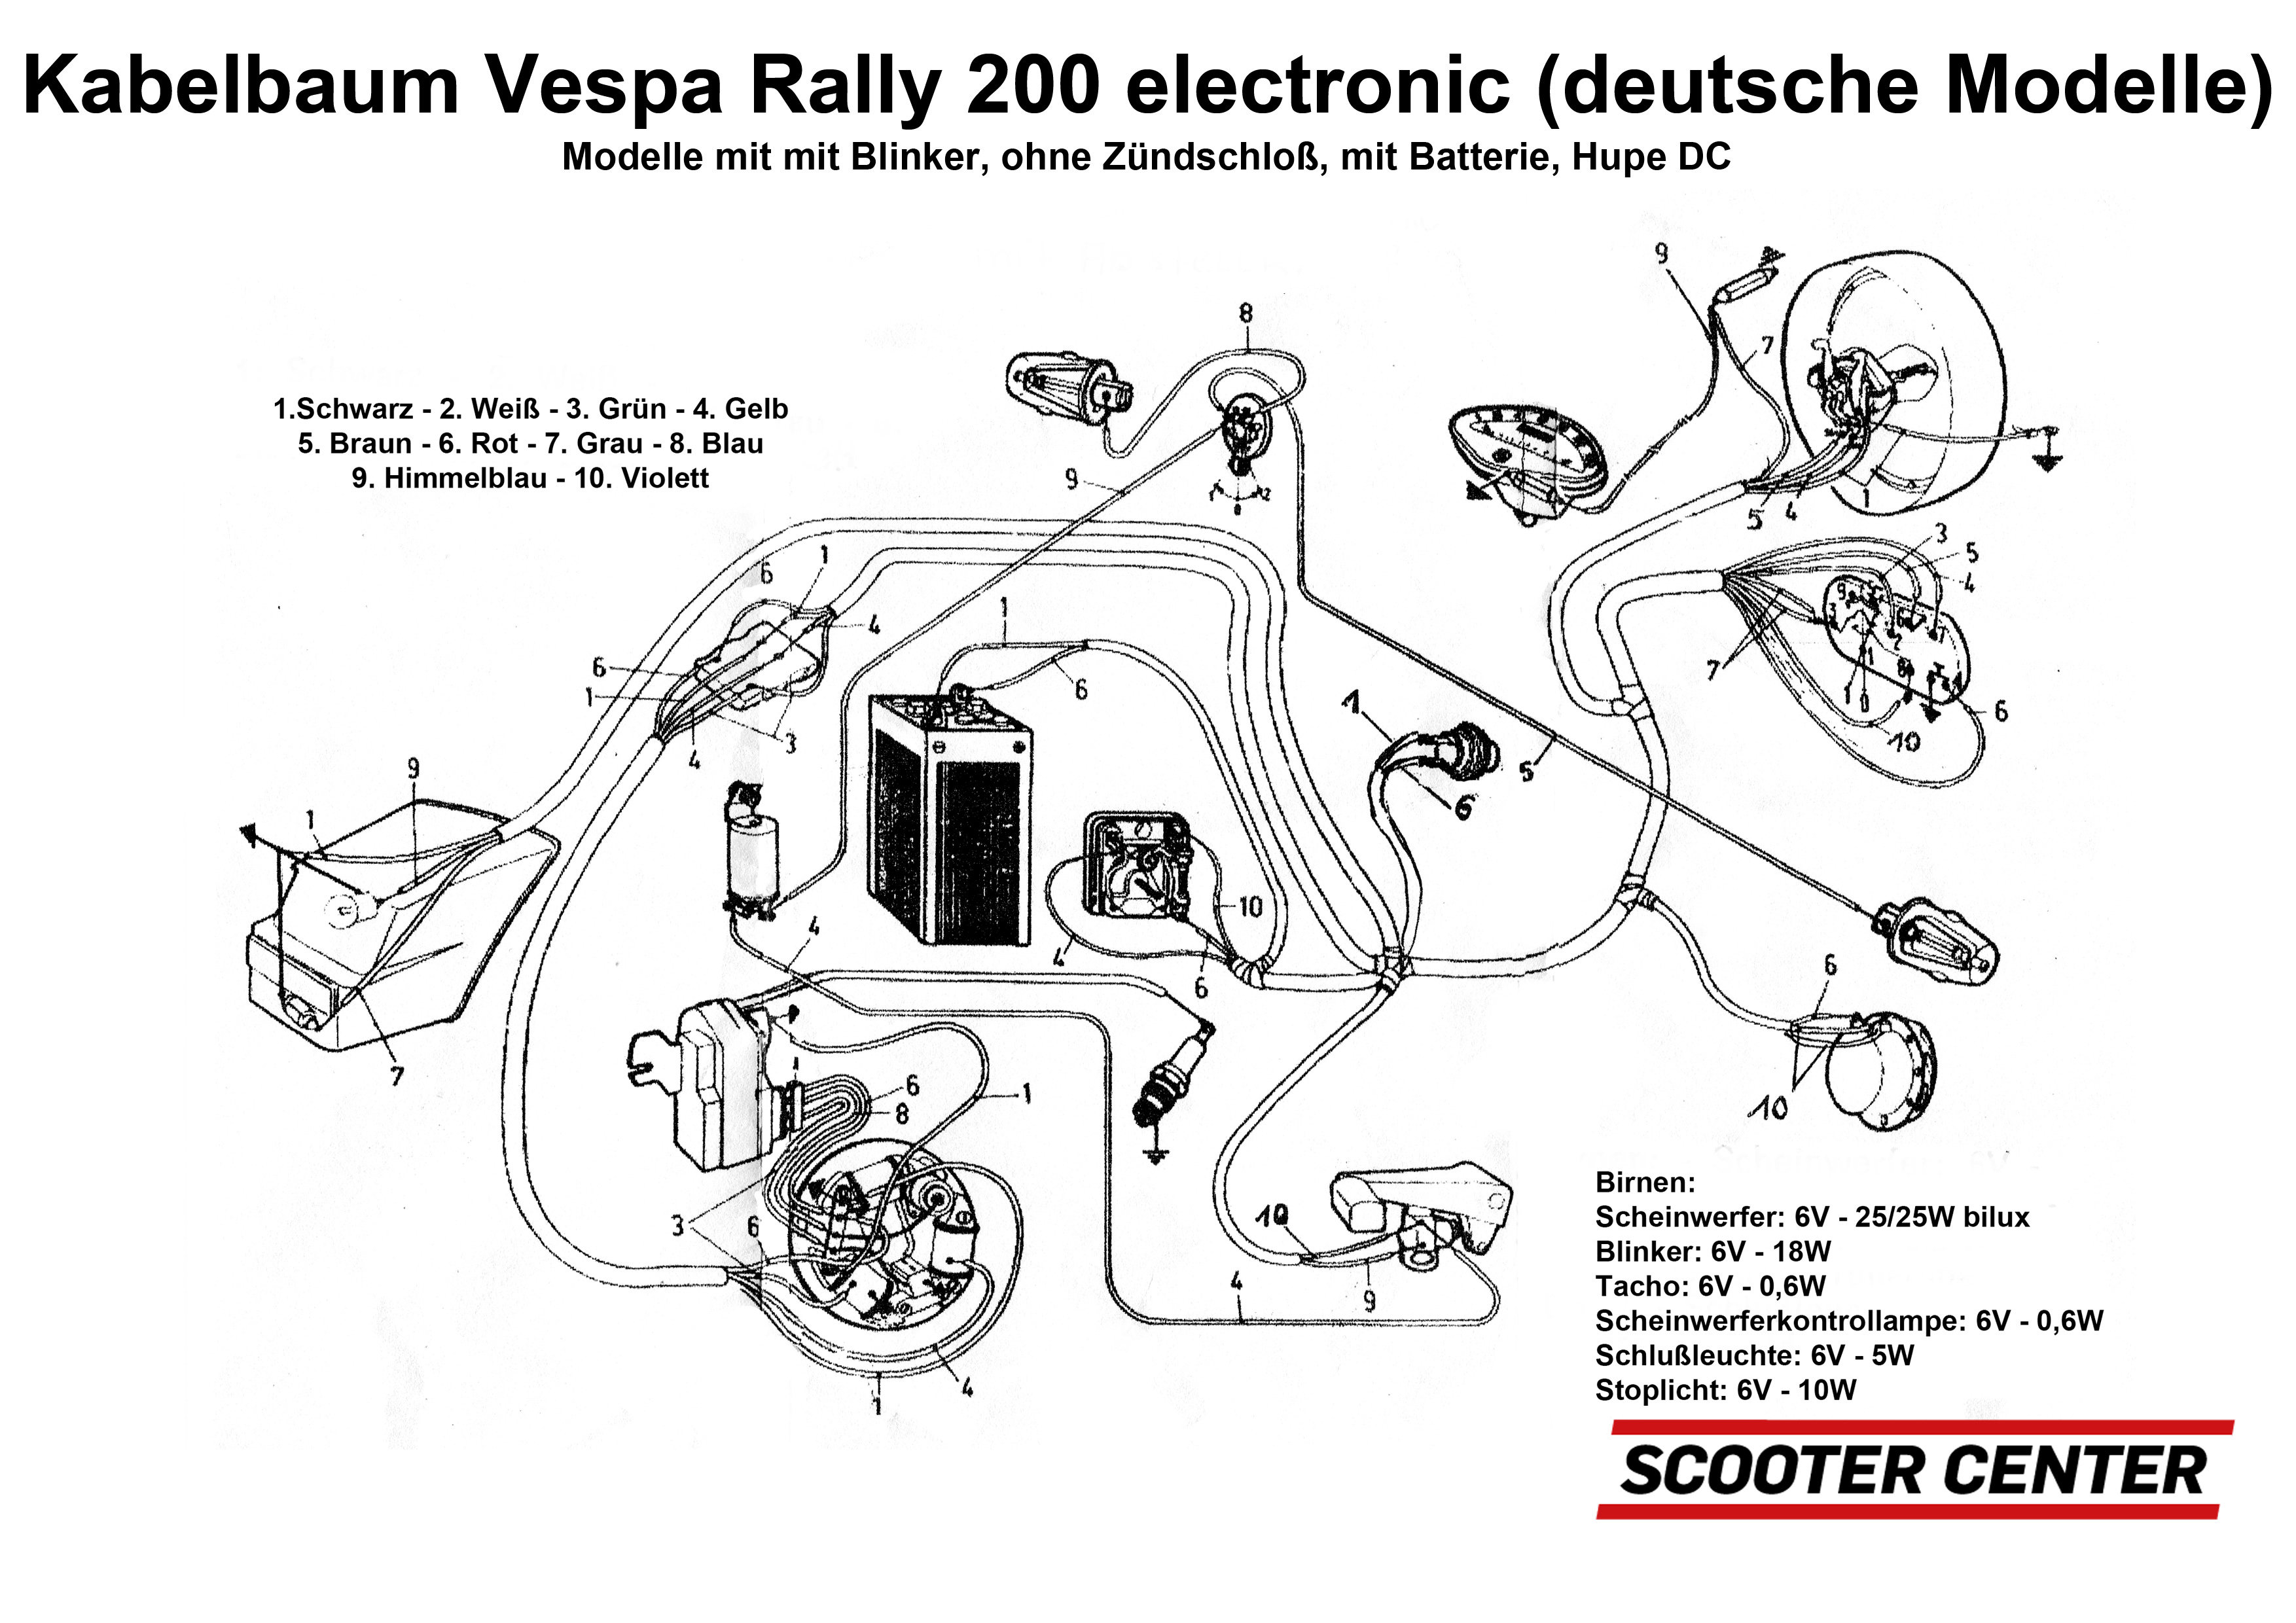 kabelbaum bgm pro vespa rally200 electronic deutsch. Black Bedroom Furniture Sets. Home Design Ideas